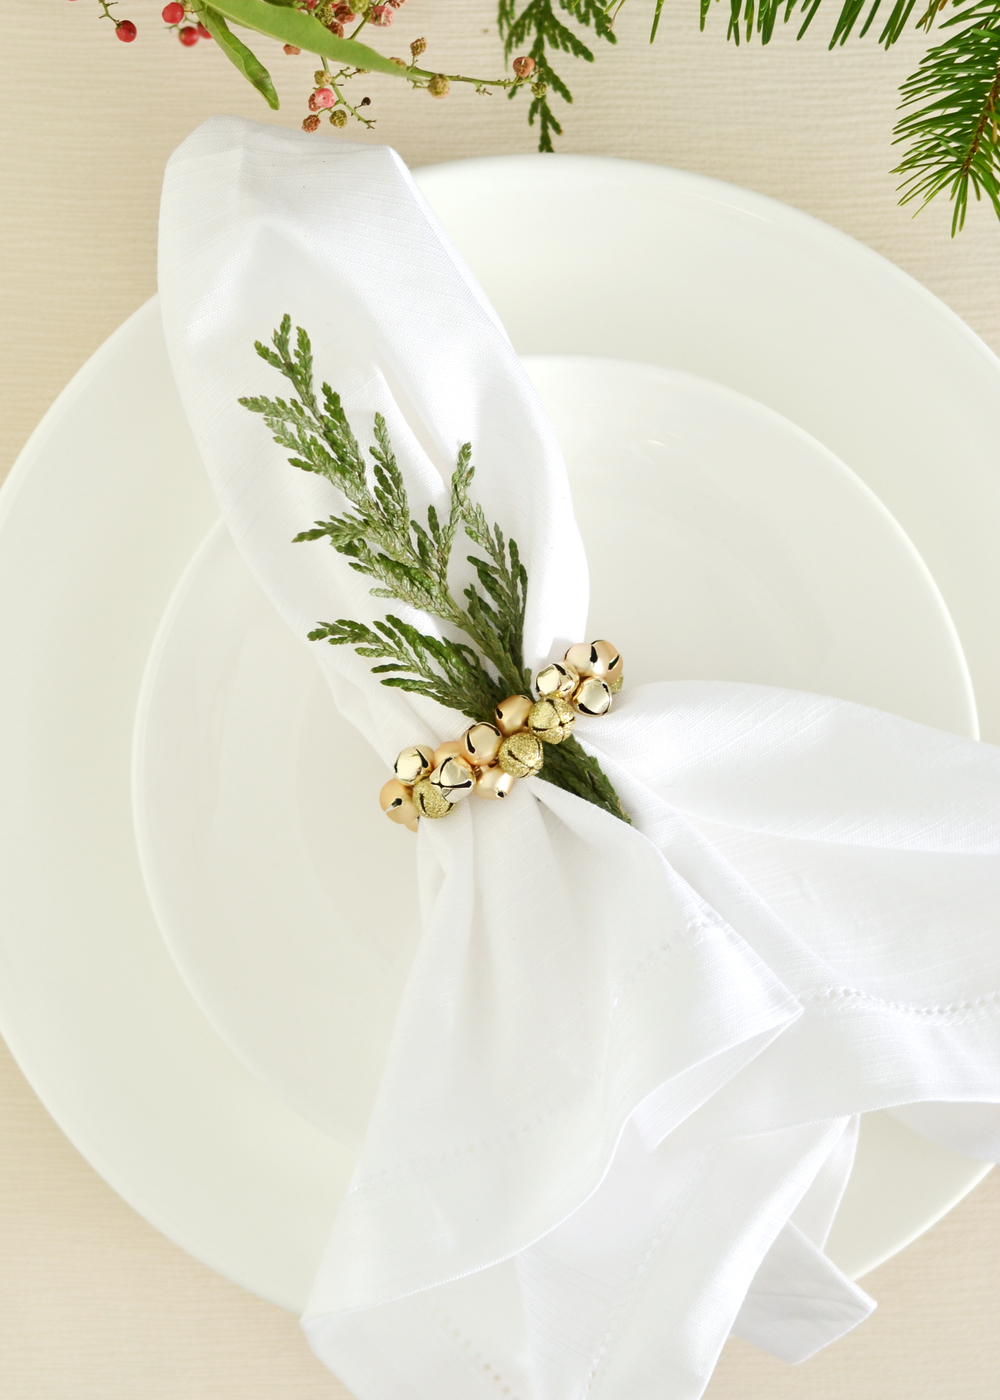 Super easy idea, perfect for Christmas! from boxwoodavenue.com